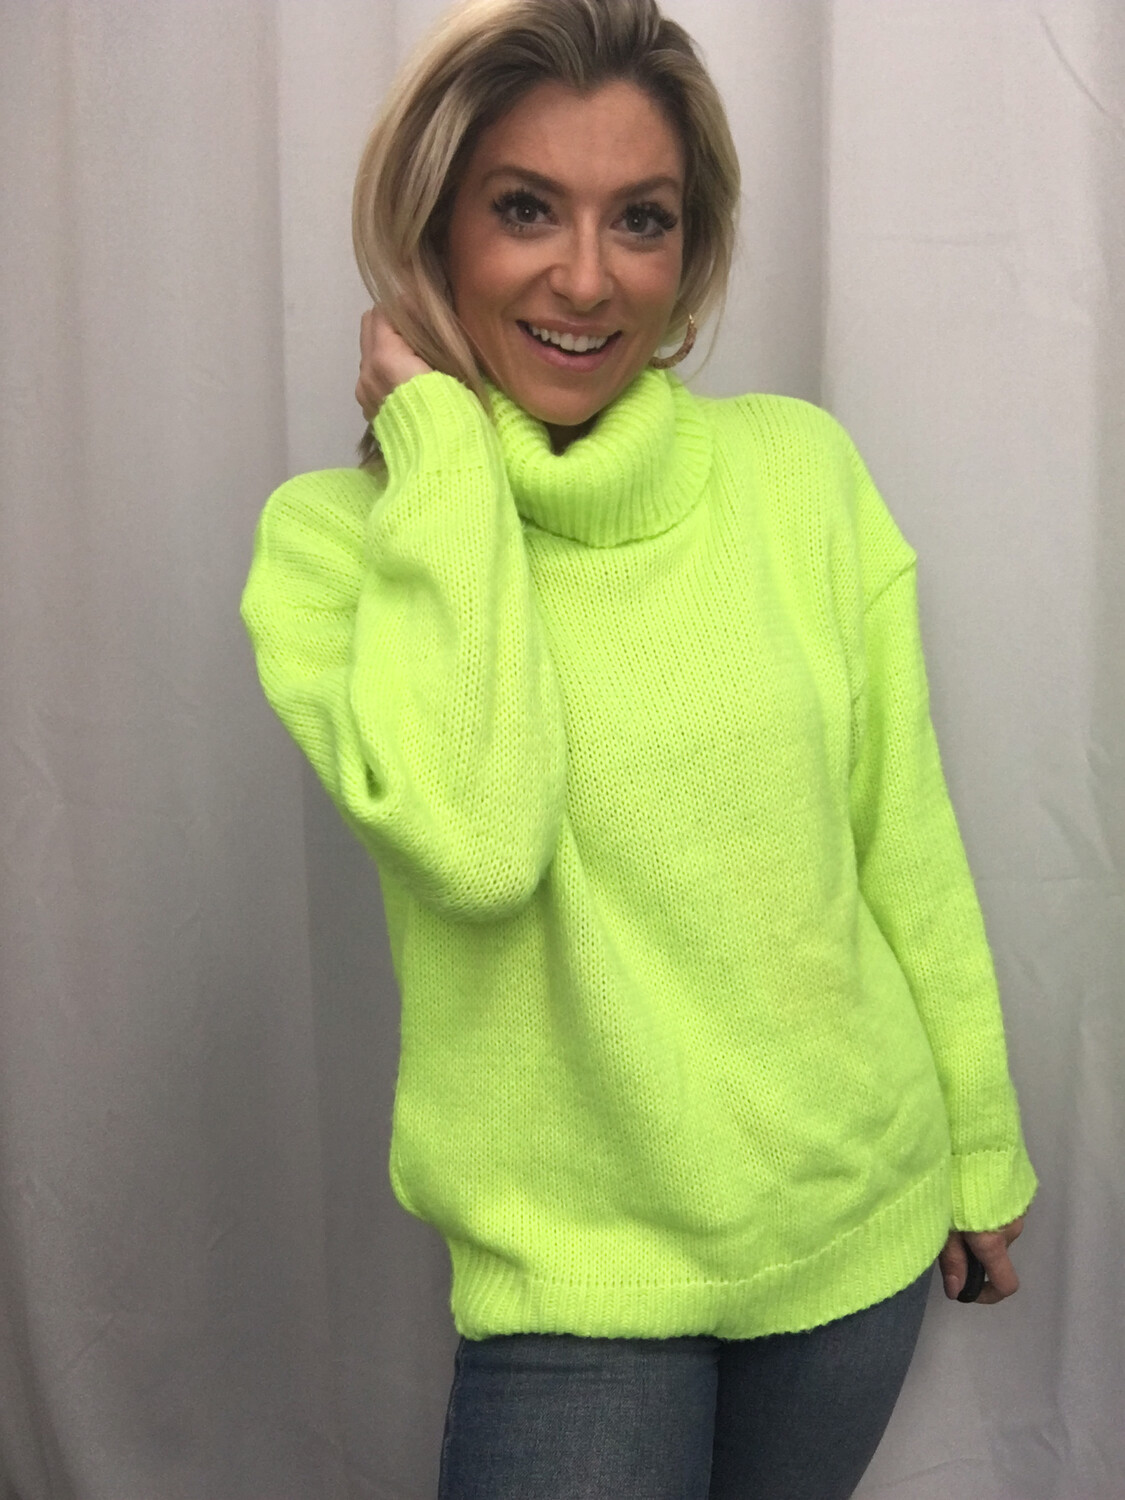 Pretty Little Thing Lime Neon Sweater - S